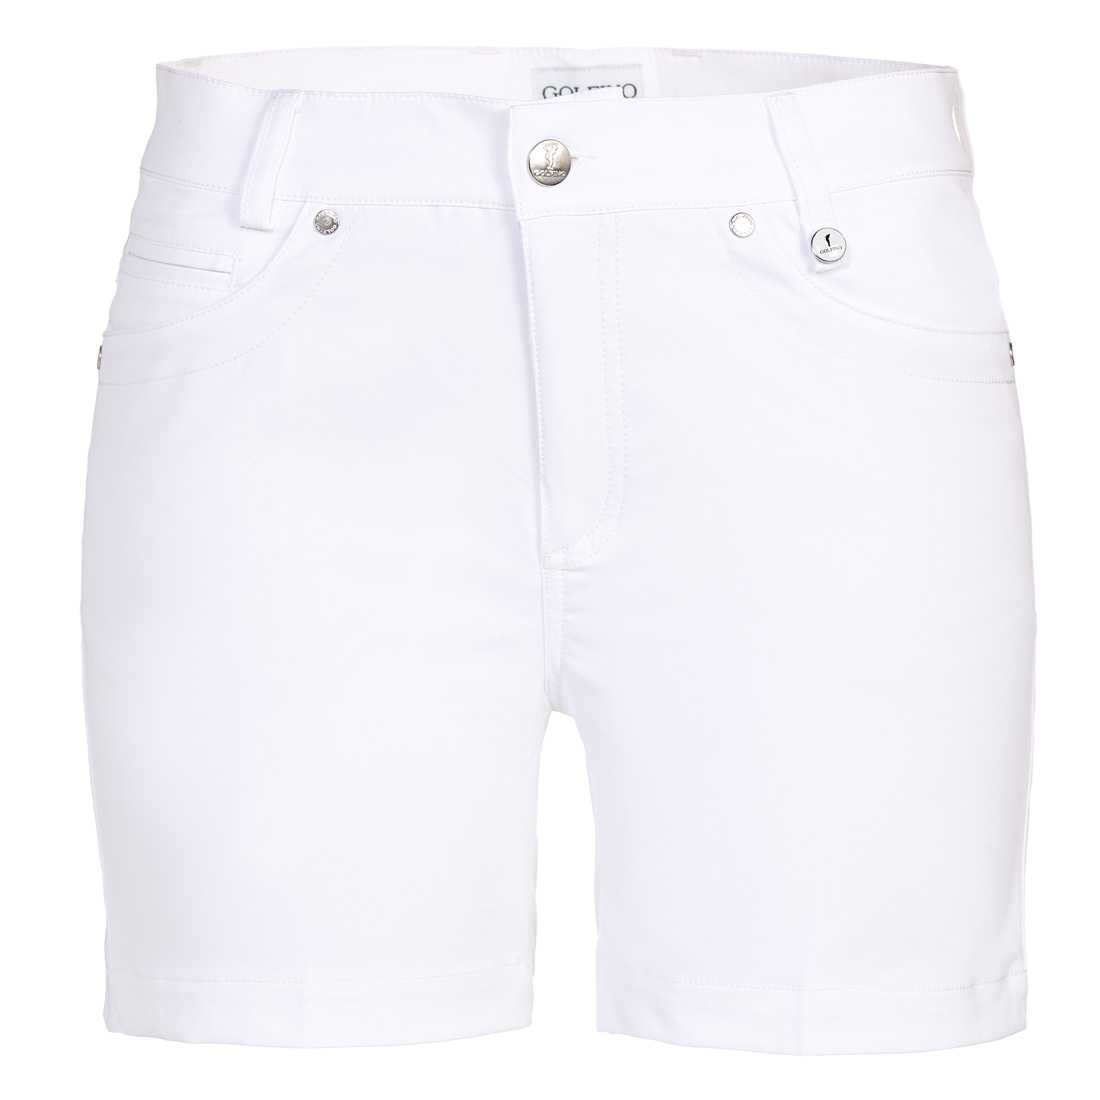 Ladies' golf shorts in short slim fit with stretch component and sun protection